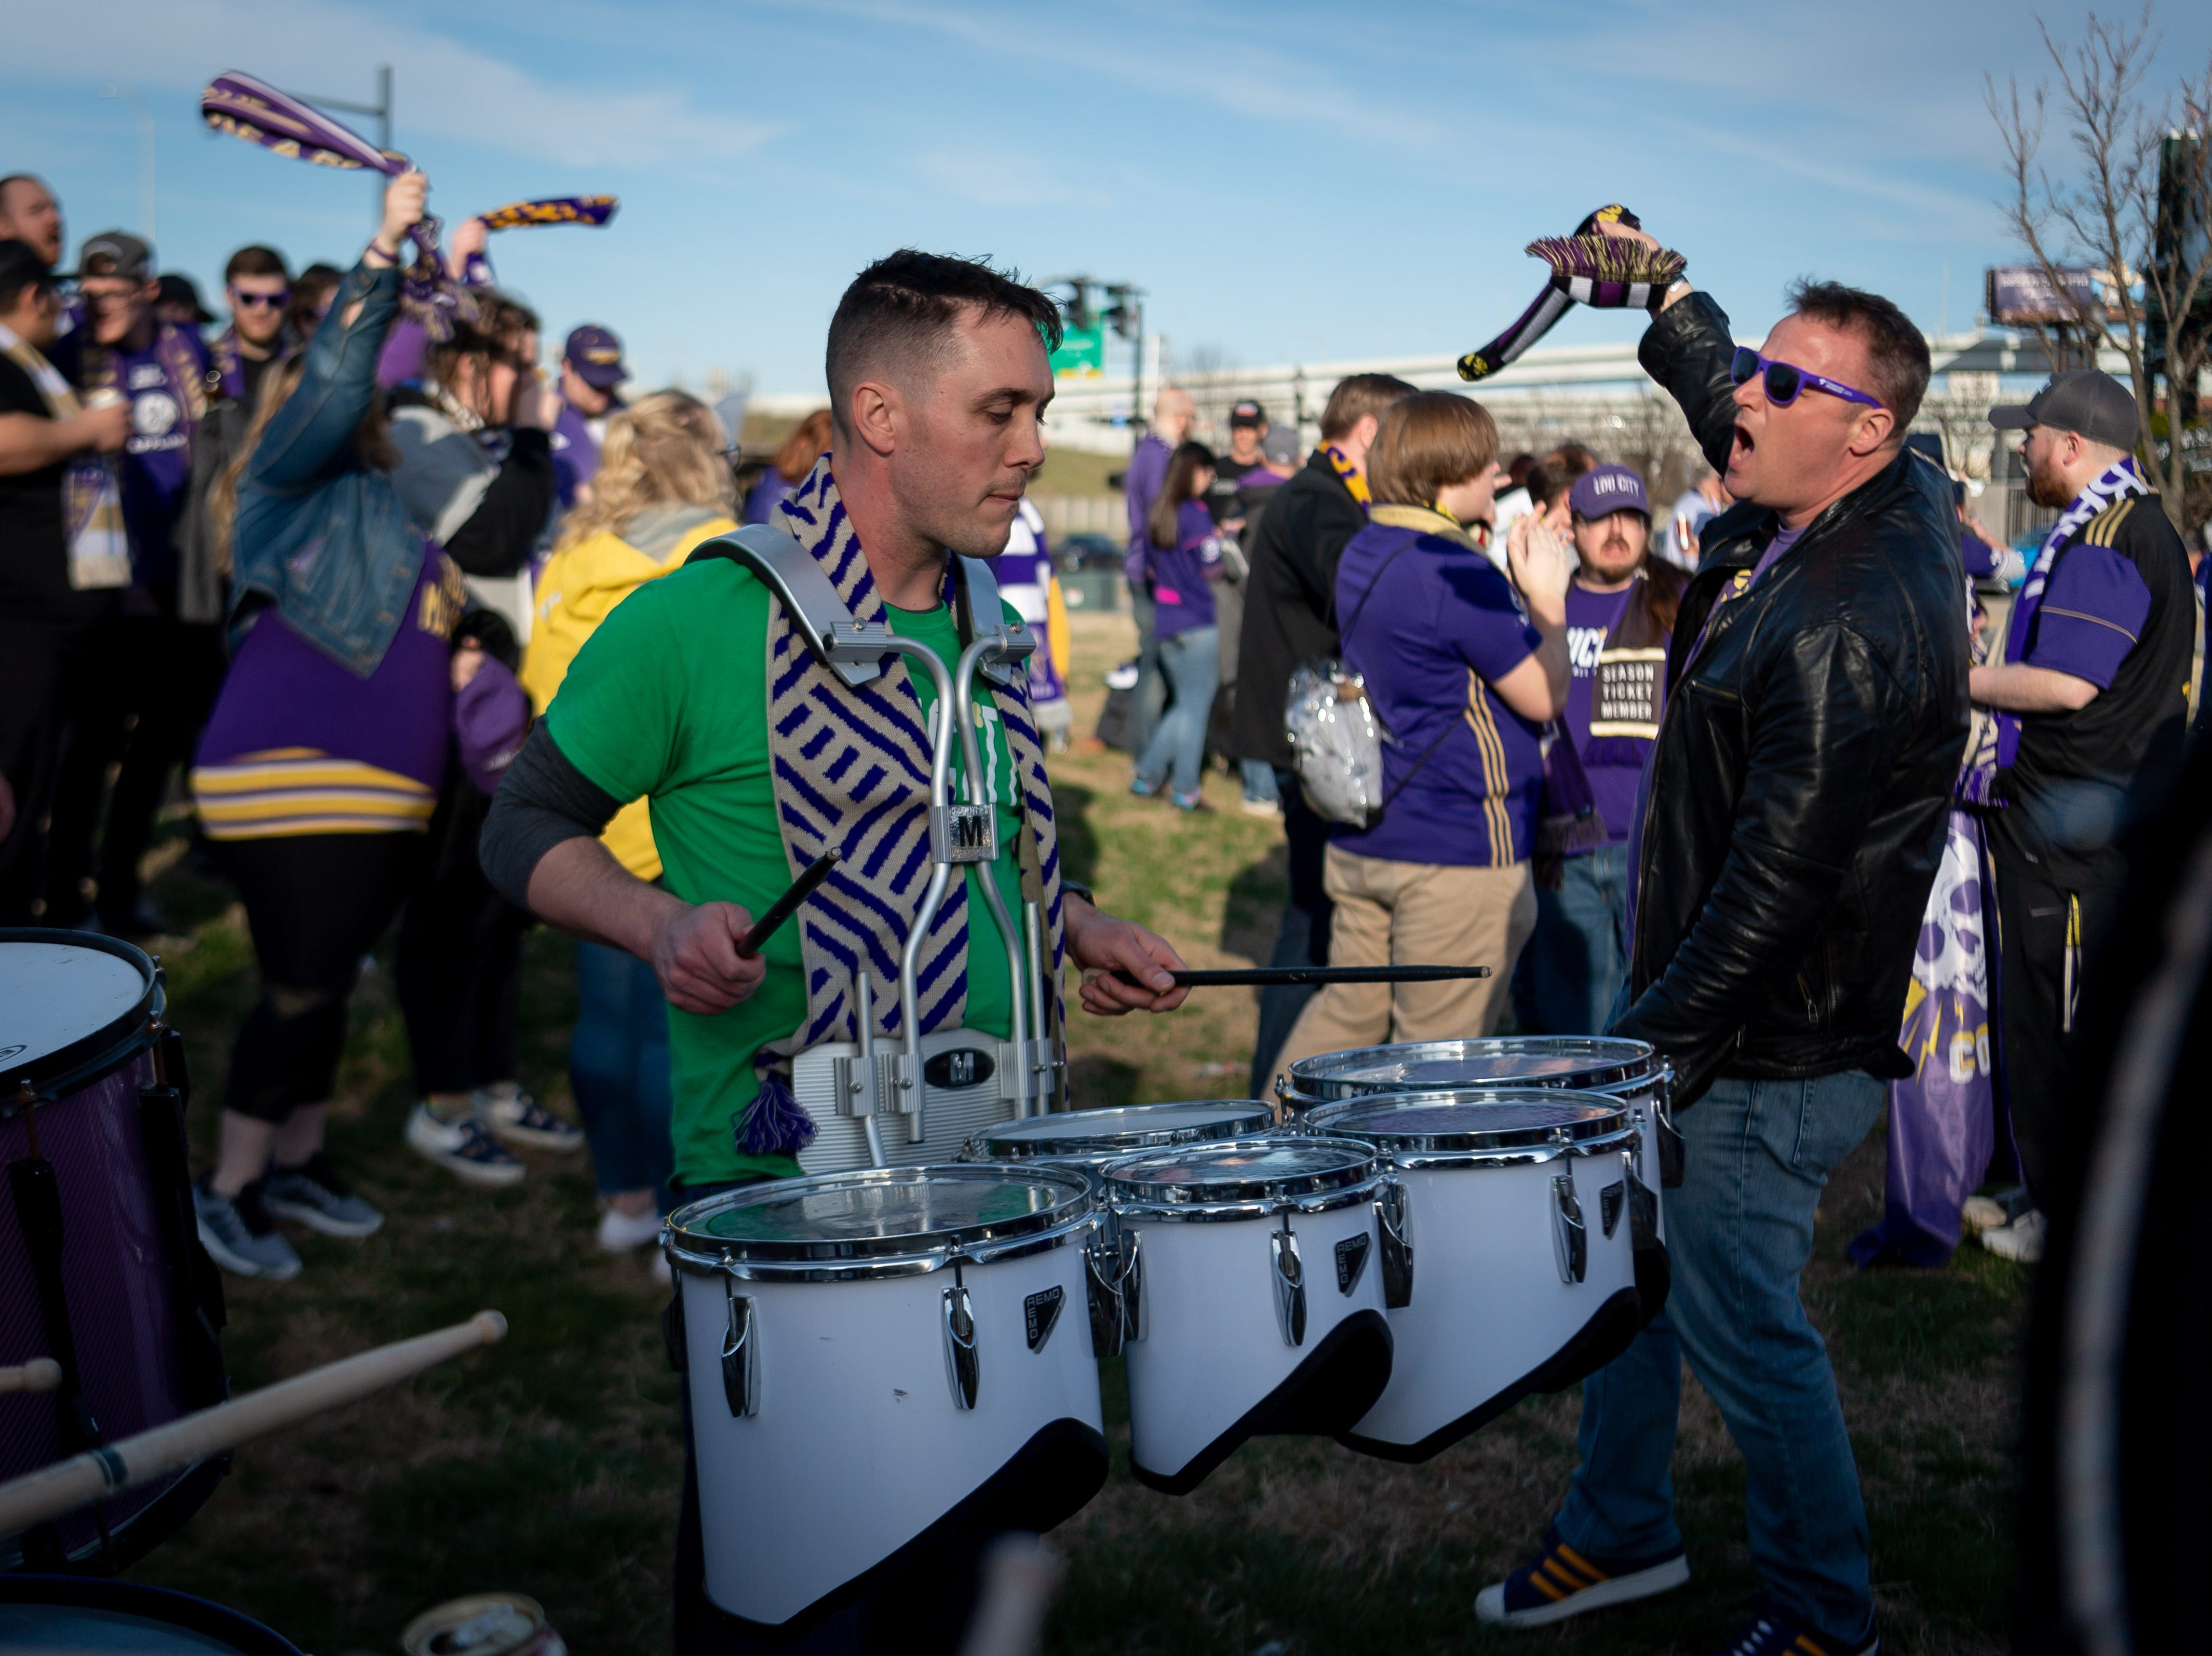 Louisville City Football Club fans celebrate before the match in Louisville, Ky., Saturday, March 23, 2019.